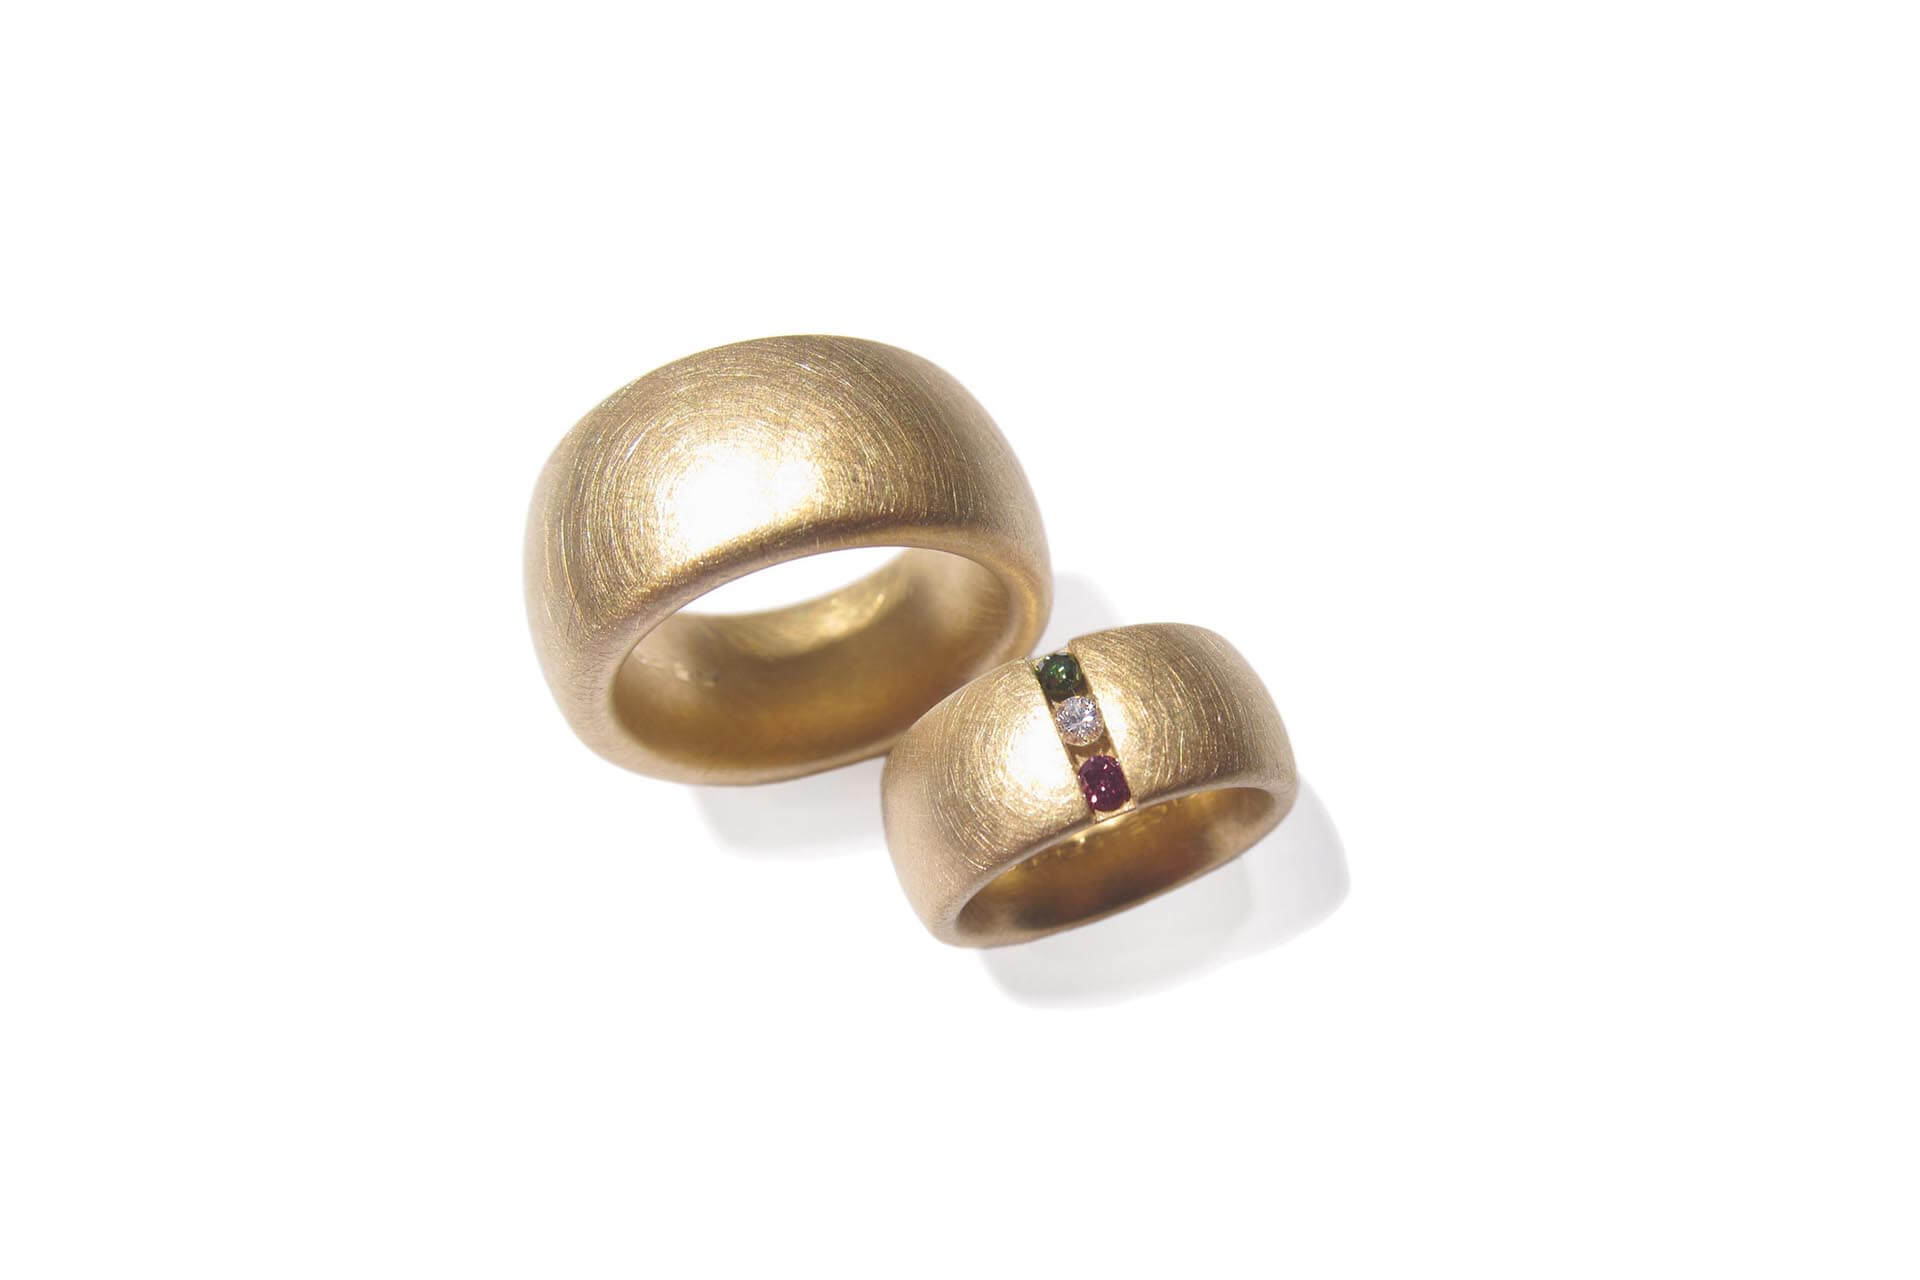 Two yellow gold oval rings with a scratched matte finish. One right has a diamond, a pink tourmaline, and a green tourmaline.